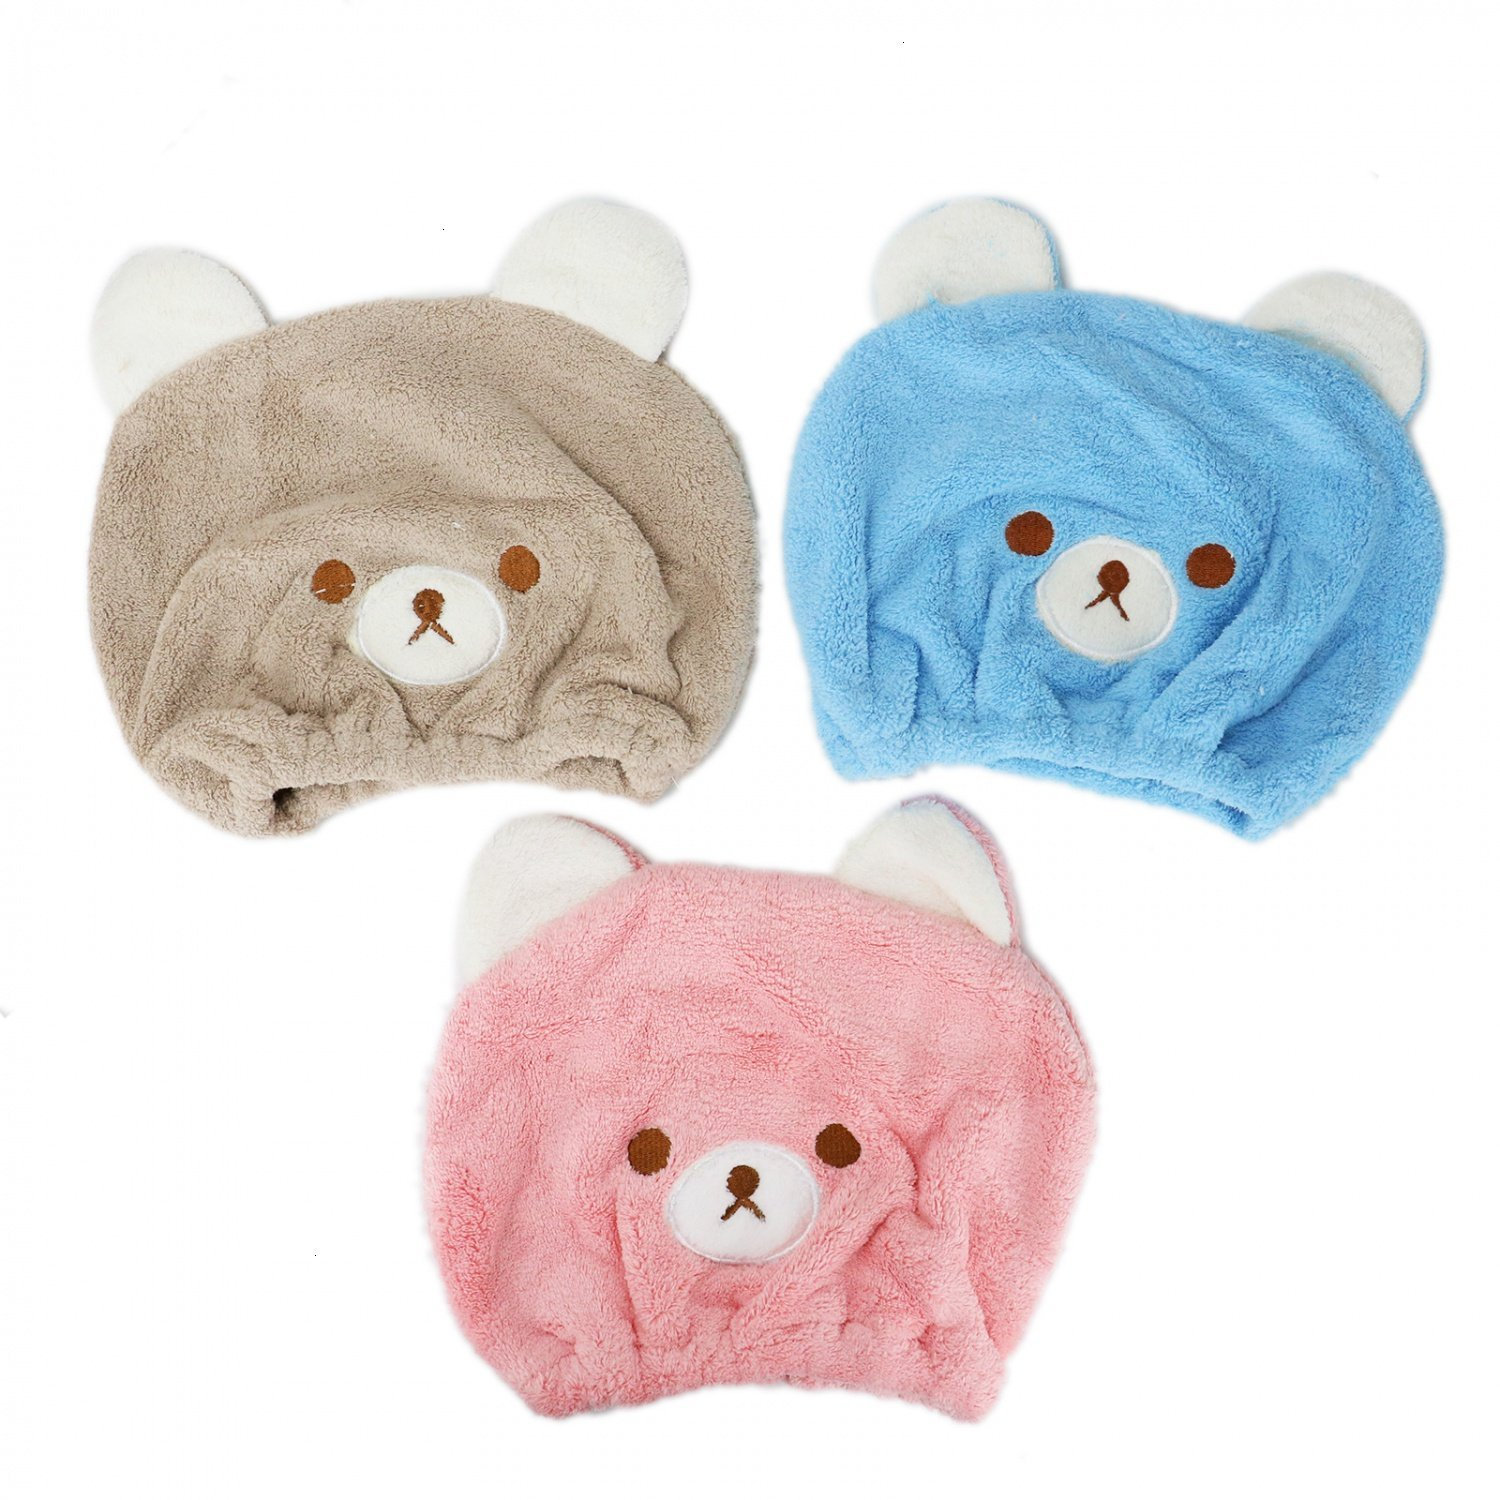 Buorsa Kids Hair Drying Towel Cute Animal Cap Dry Cap Hair Cap Water Absorption Towel Girls Ultra Absorbent & Quick Drying Adjustable Infant Shower Bath Cap for Kids